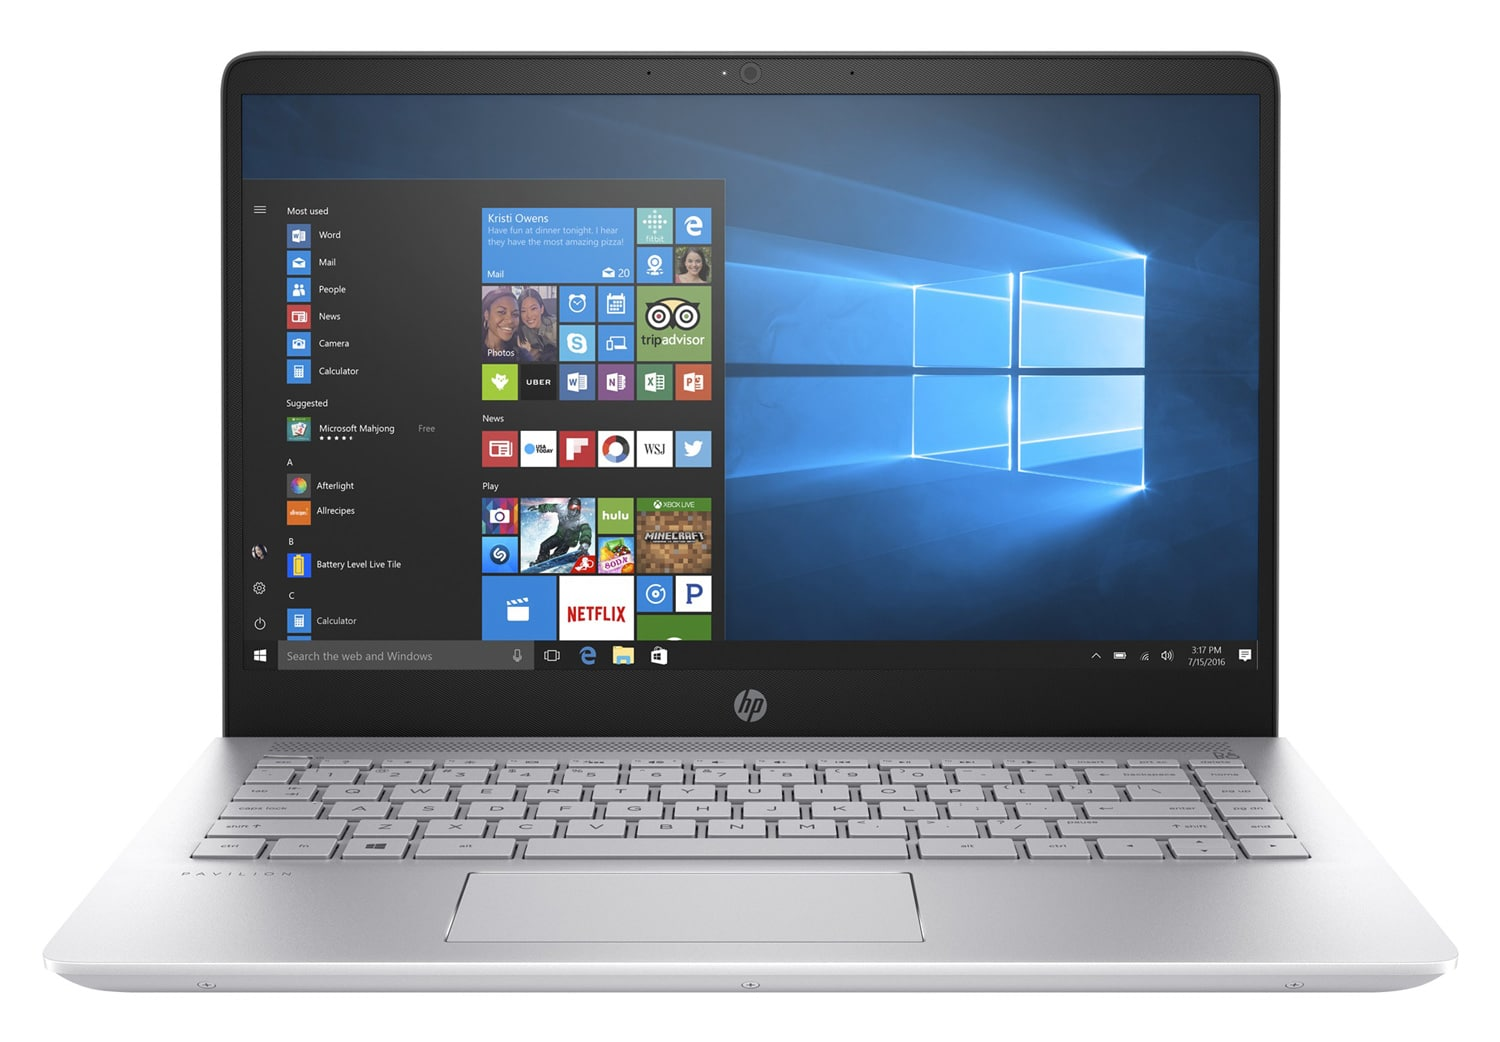 HP Pavilion 14-bf022nf à 699€, PC portable 14 pouces Full IPS Core i5 940MX